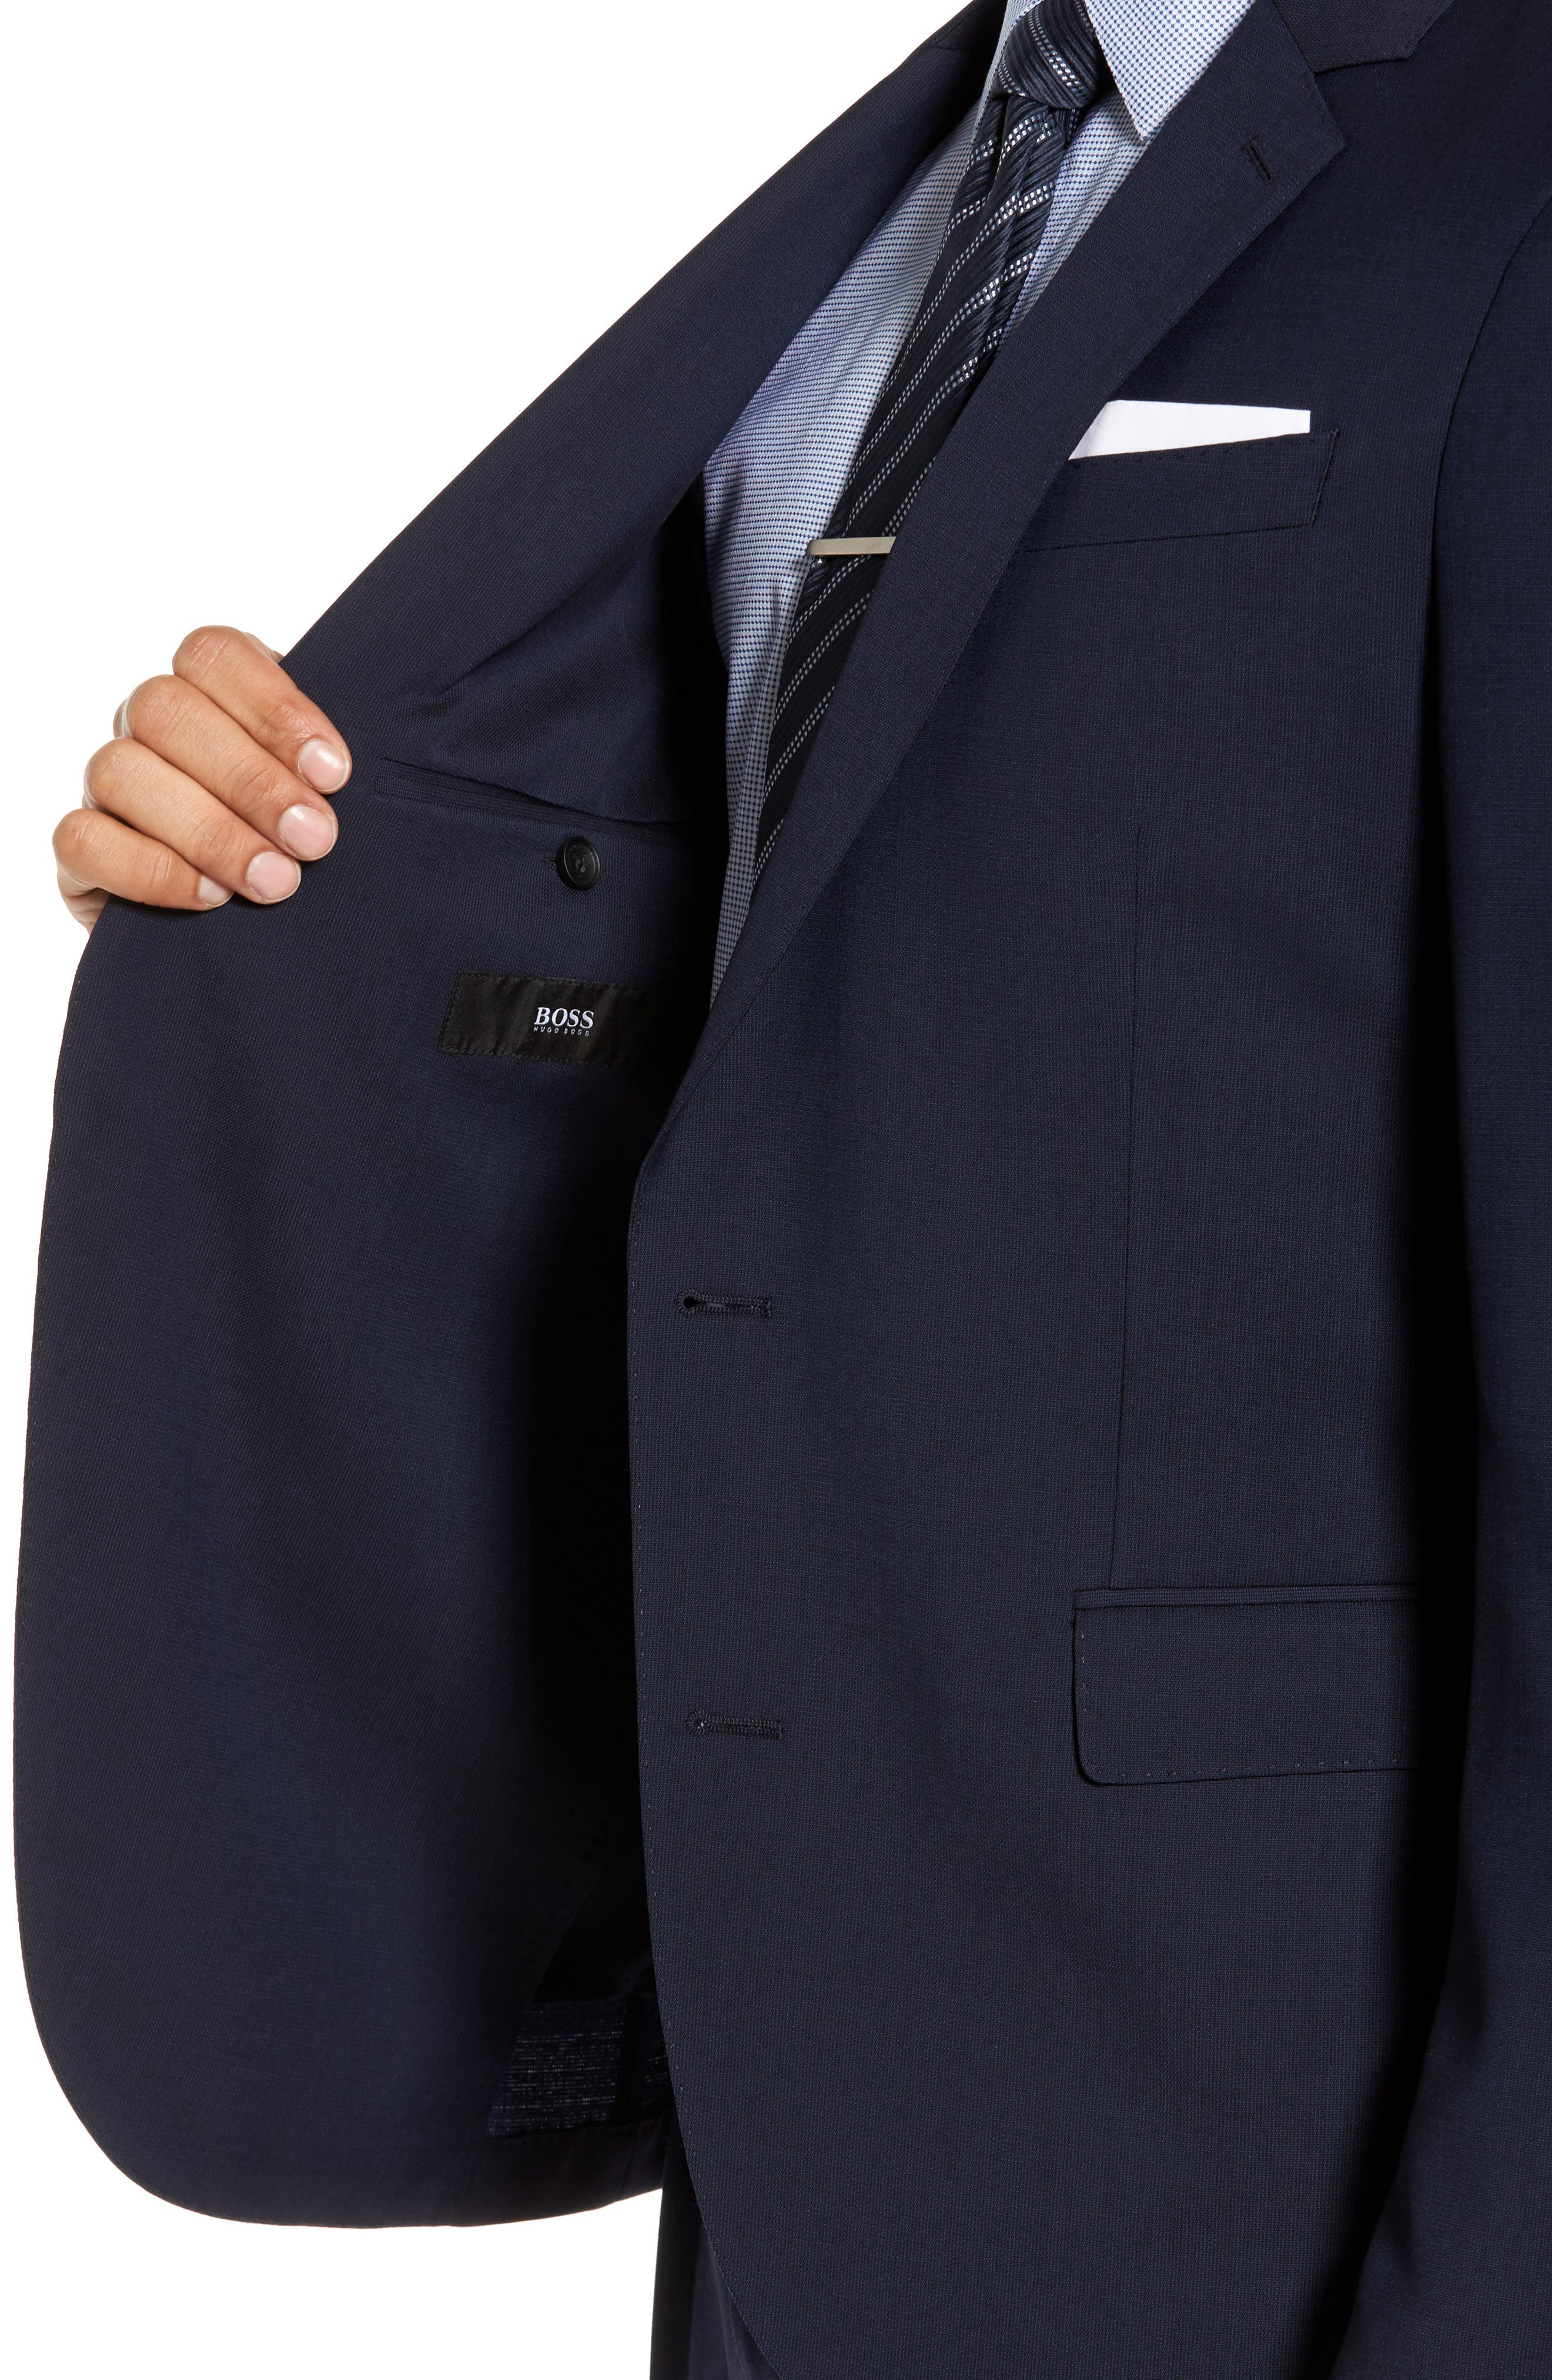 Nylen/Perry Trim Fit Solid Wool Suit,                             Alternate thumbnail 5, color,